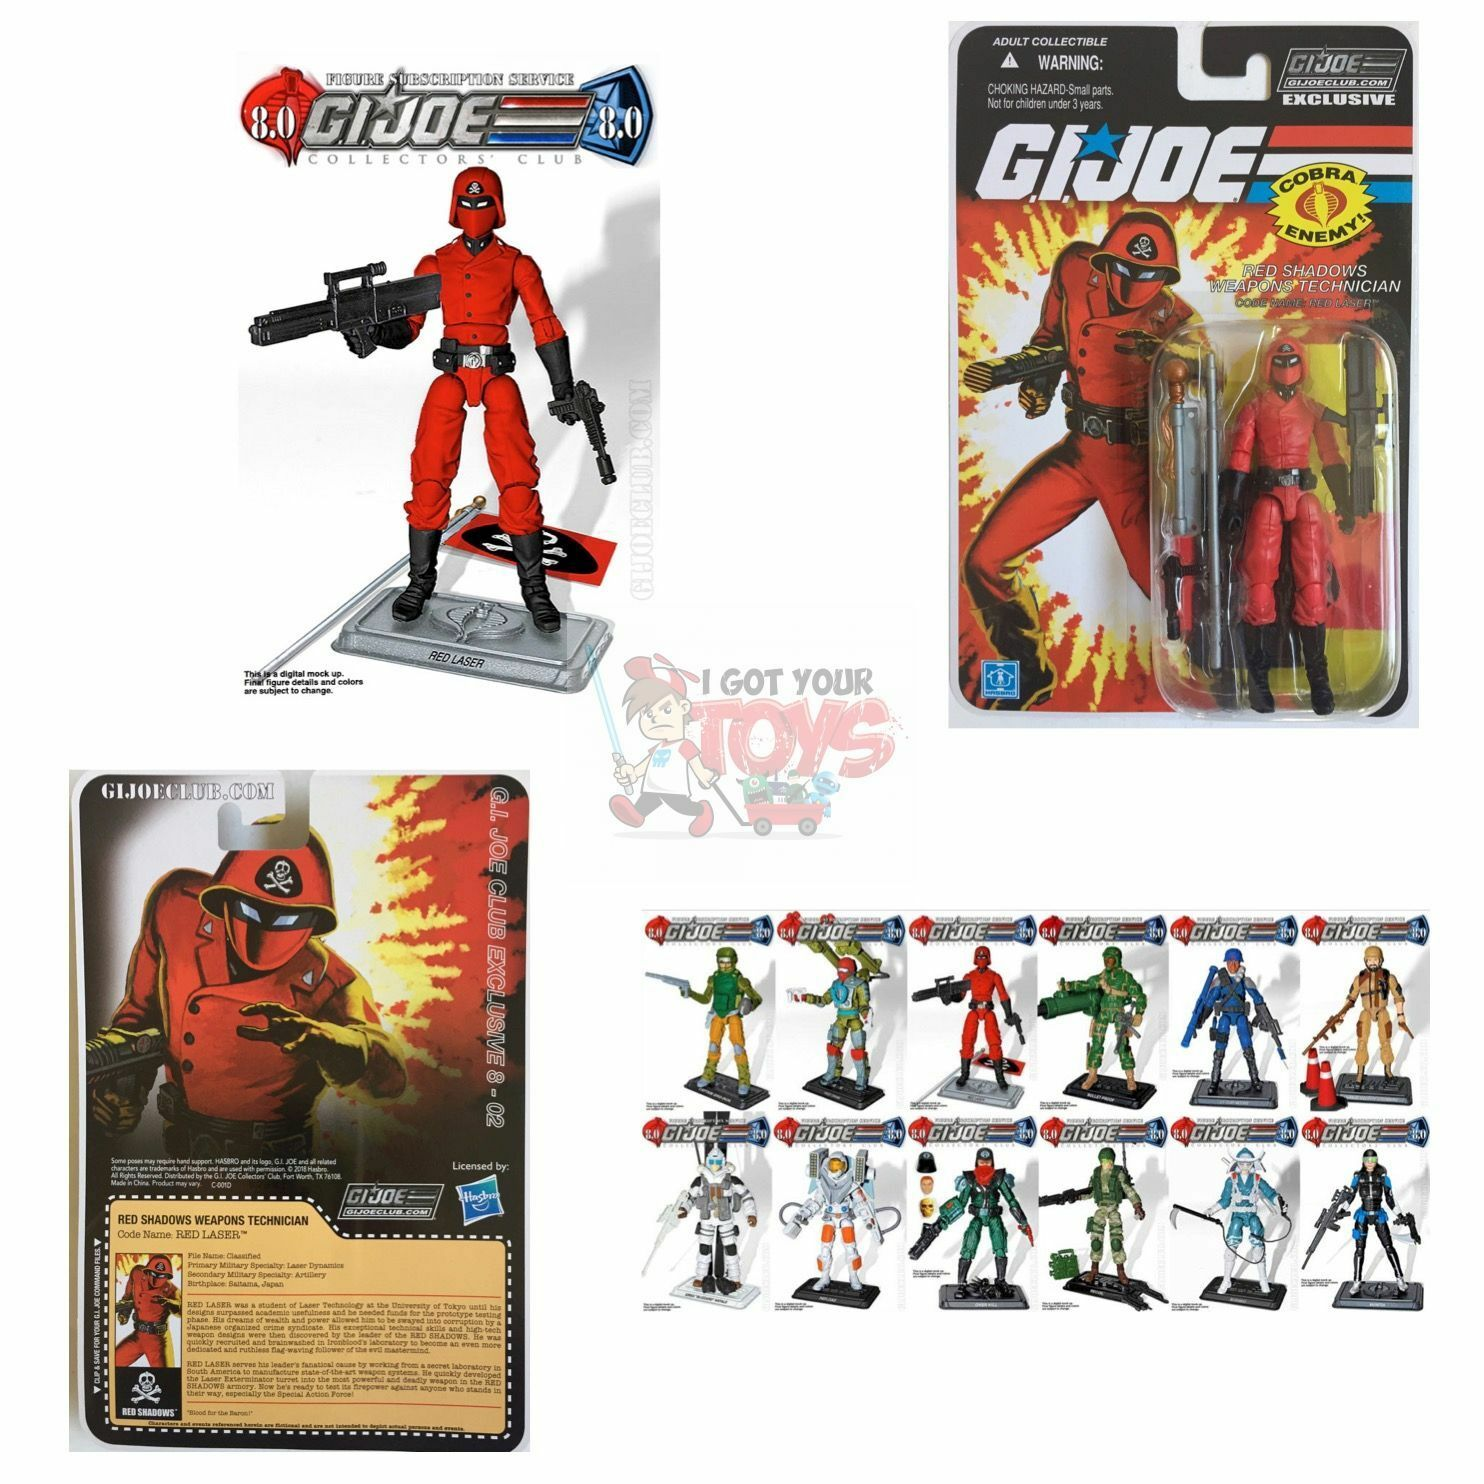 RED LASER (RED SHADOWS) FSS 8.0 GI JOE Club 3.75  Inch 2018 EXCLUSIVE FIGURE